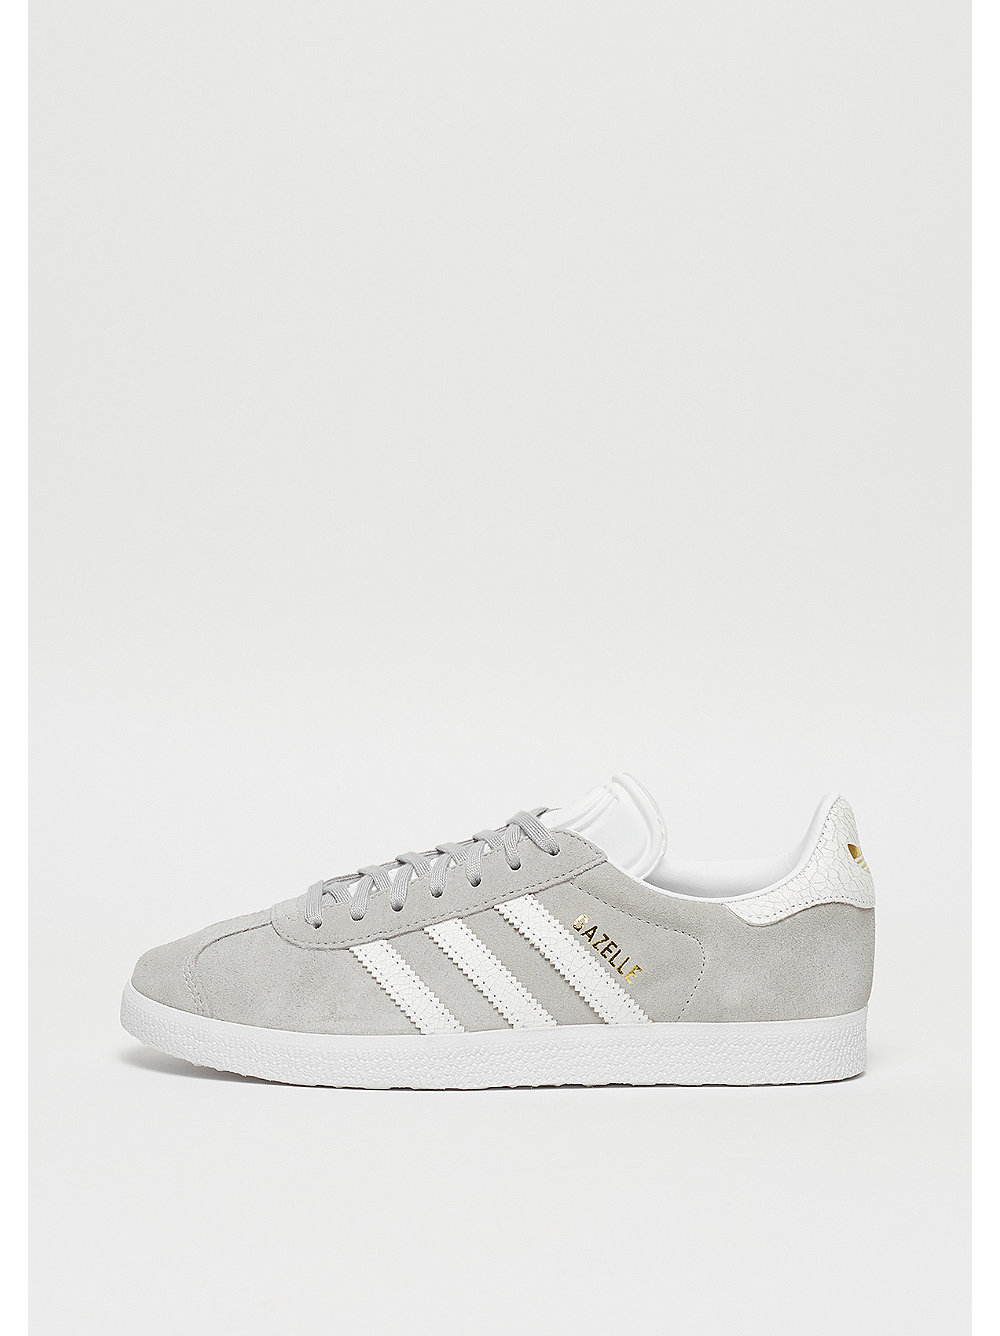 adidas Gazelle W grey two/ftwr white/ftwr white